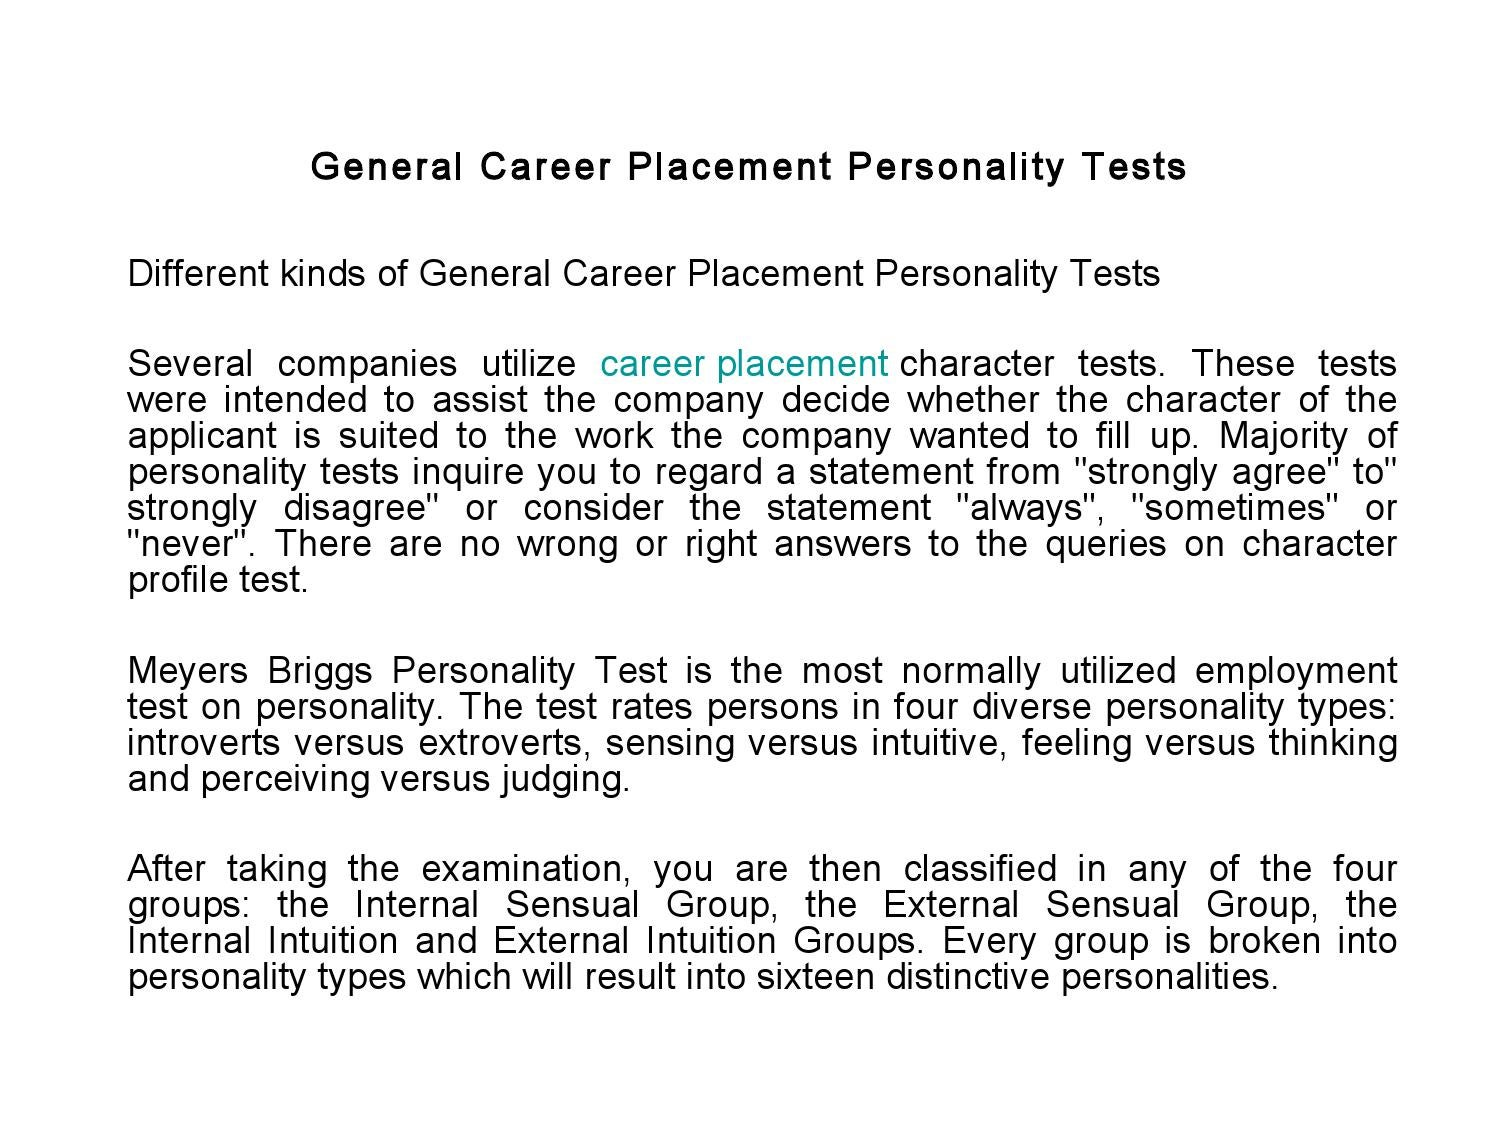 General Career Placement Personality Tests by crystal cane